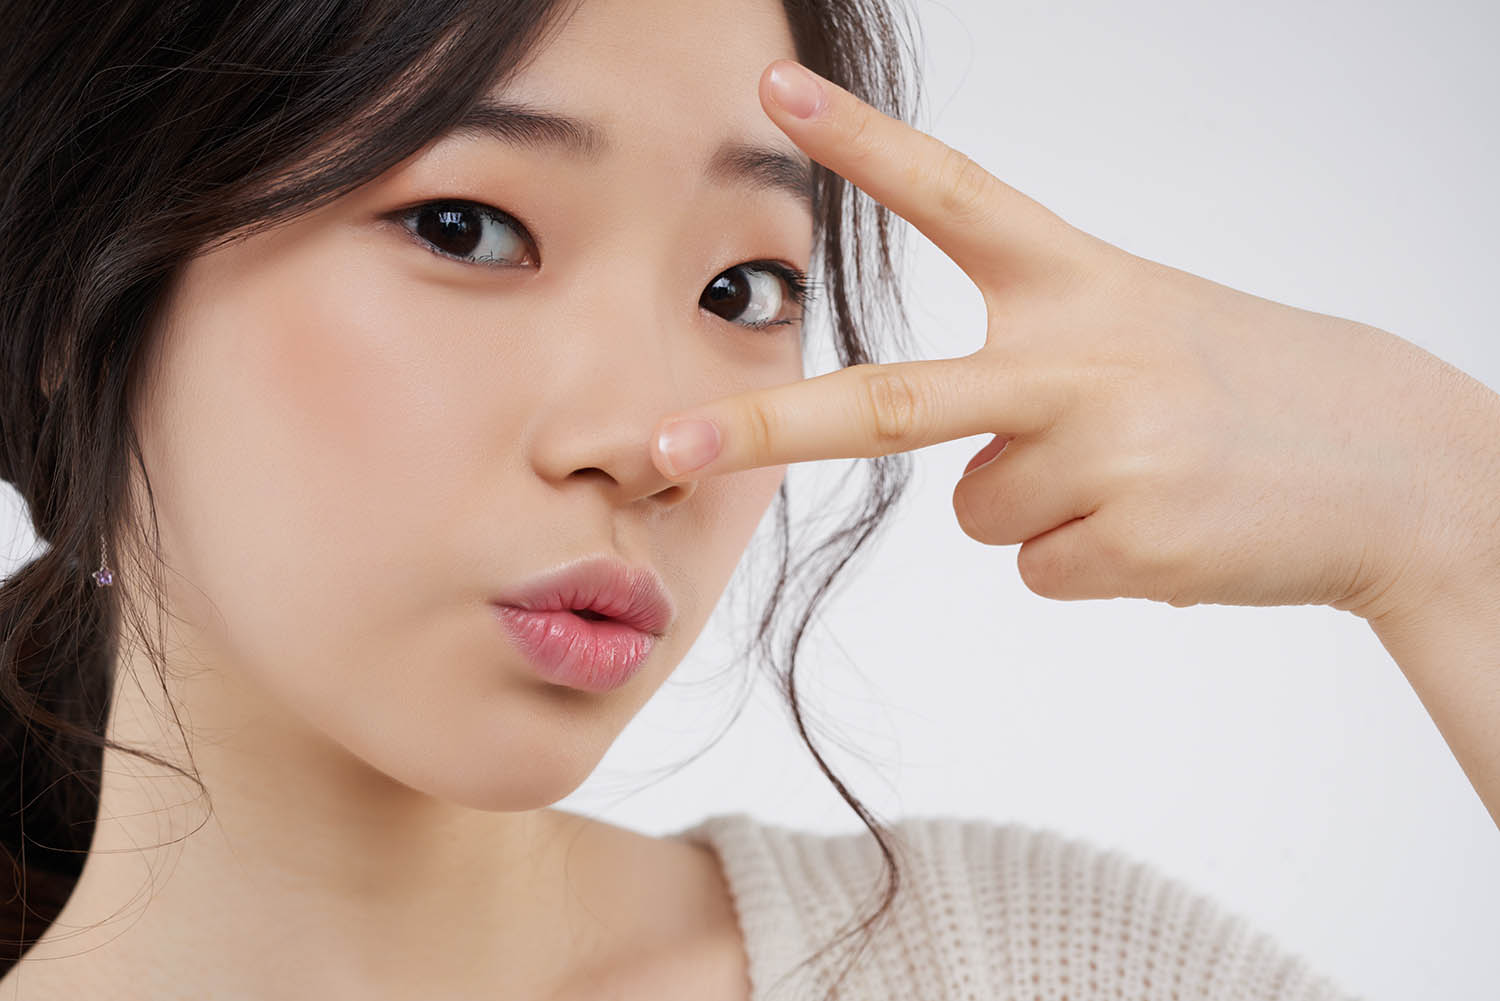 Face of attractive Korean woman with beauty eyes